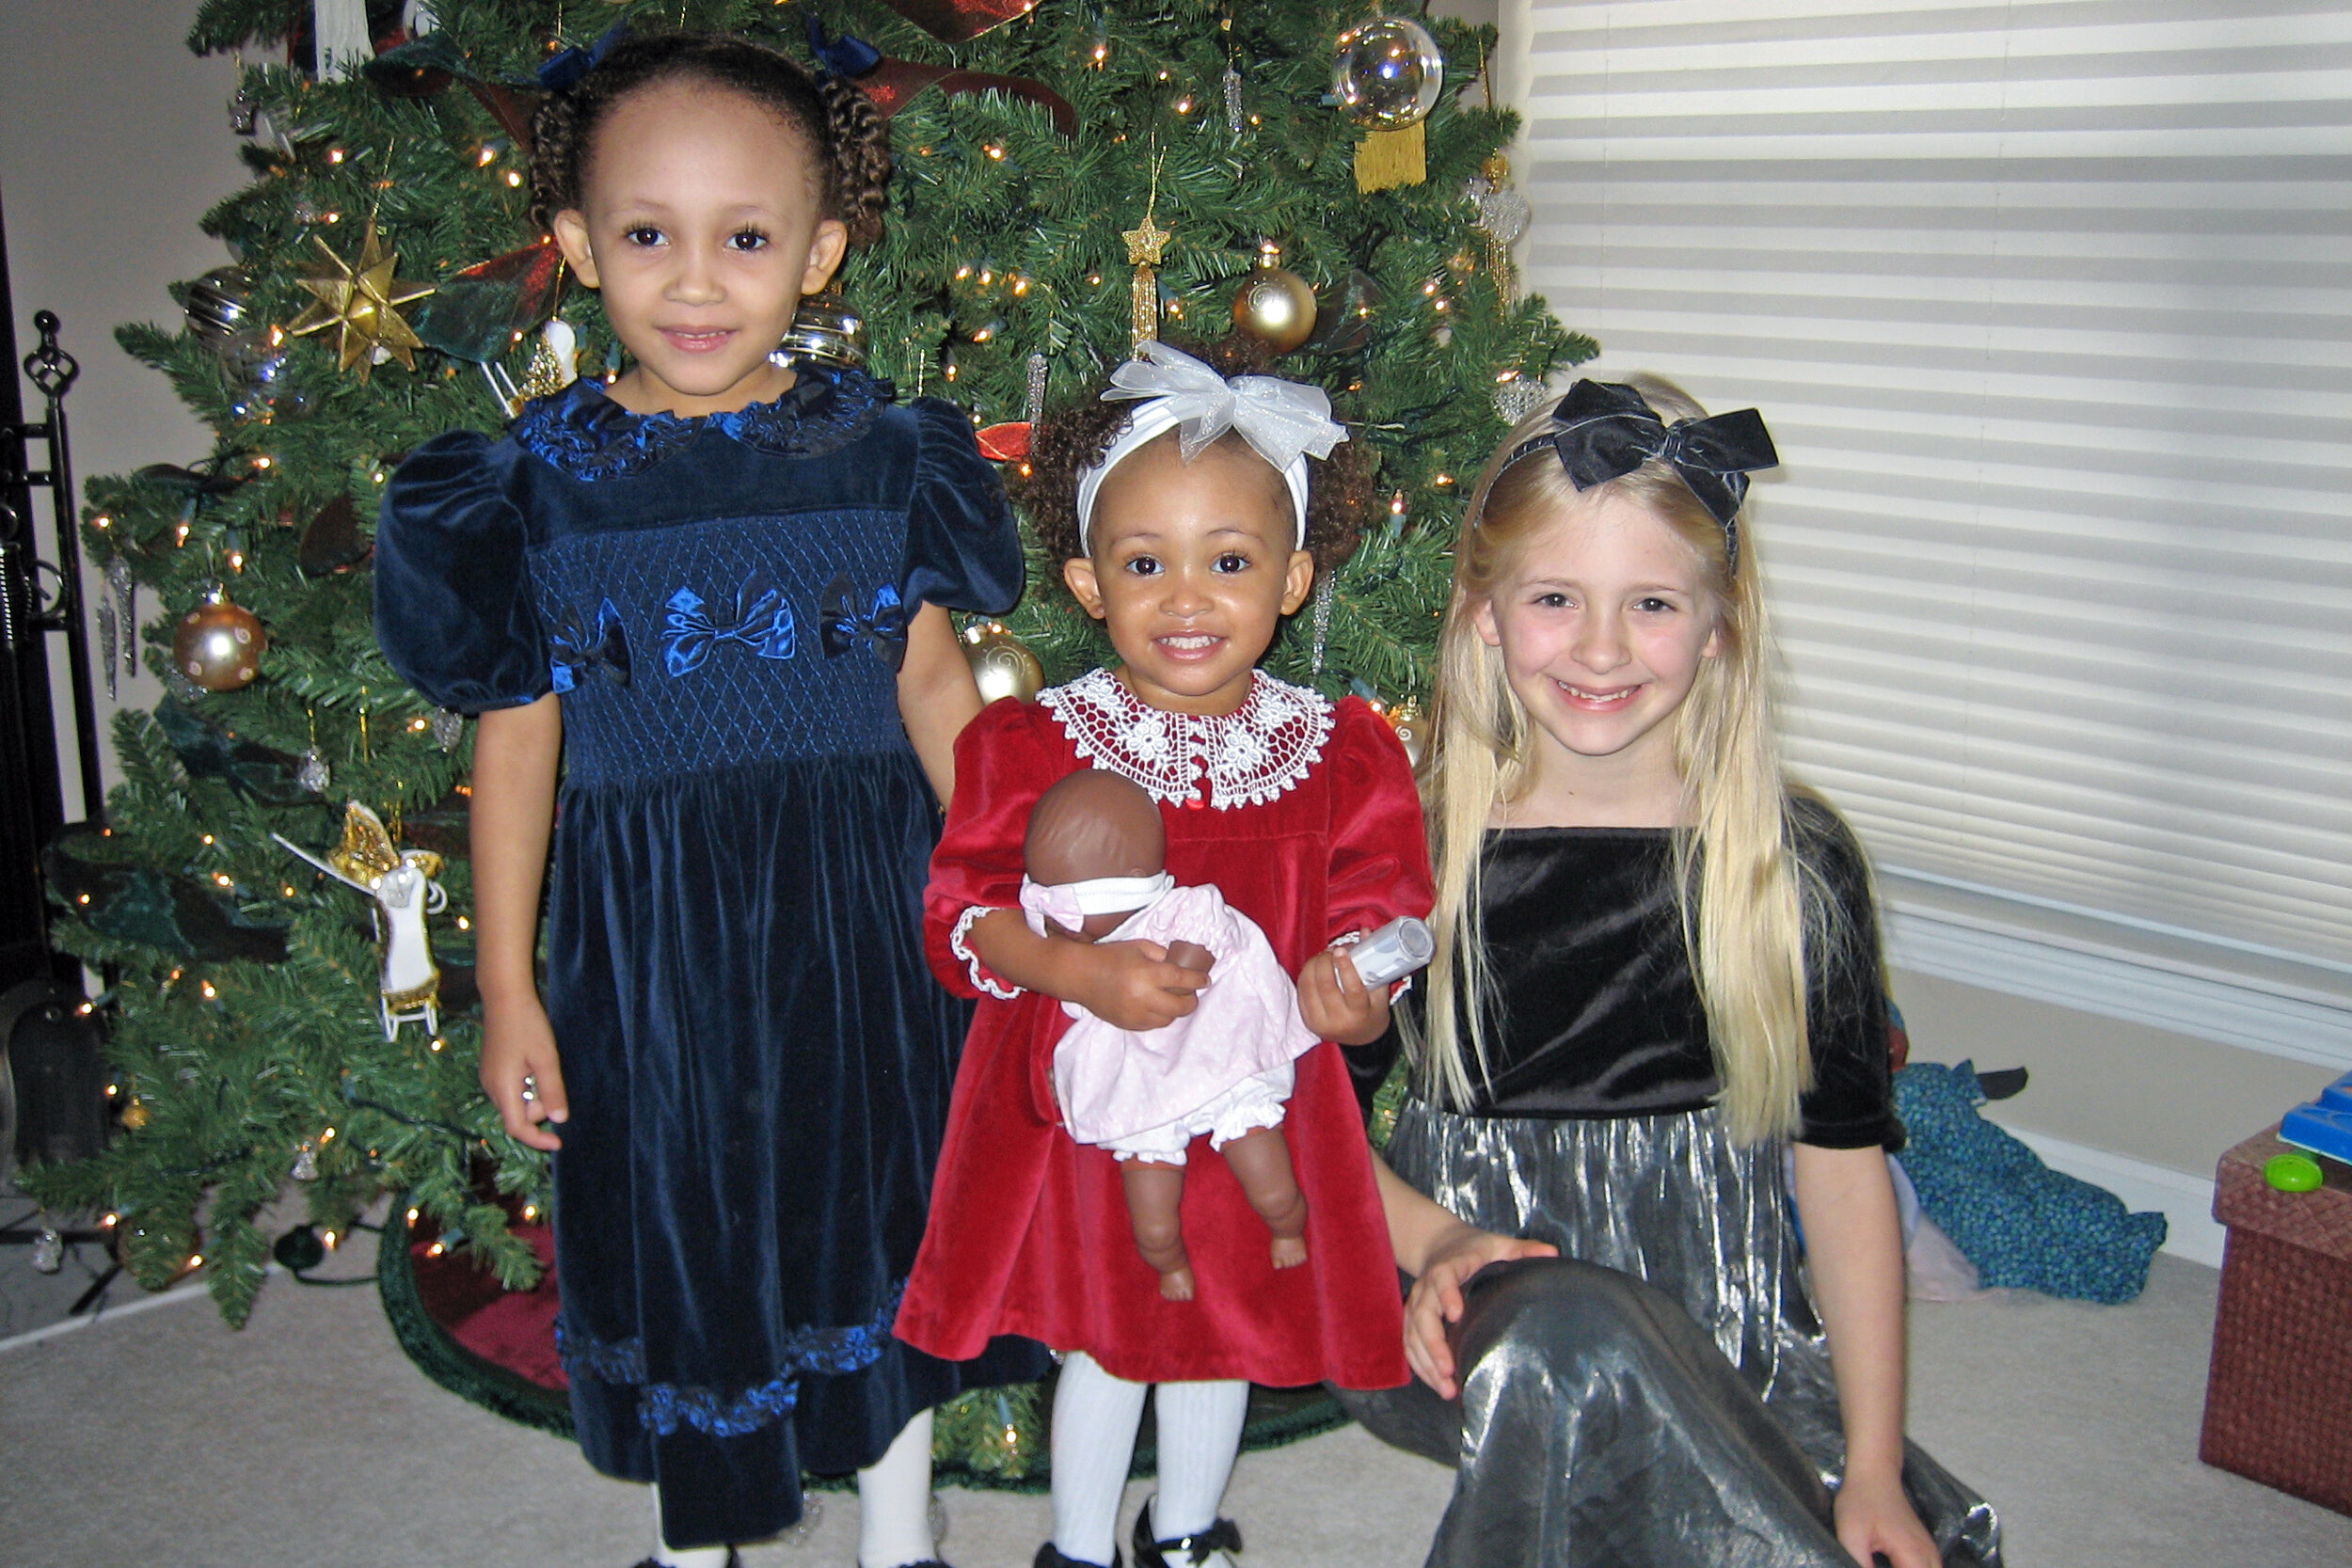 Learning to watch and wait… - My two adopted daughters came home nine days before Christmas after a two-year wait. I learned a lot about waiting during that season. It takes my breath away to realize they have been home for 14 years this Advent.